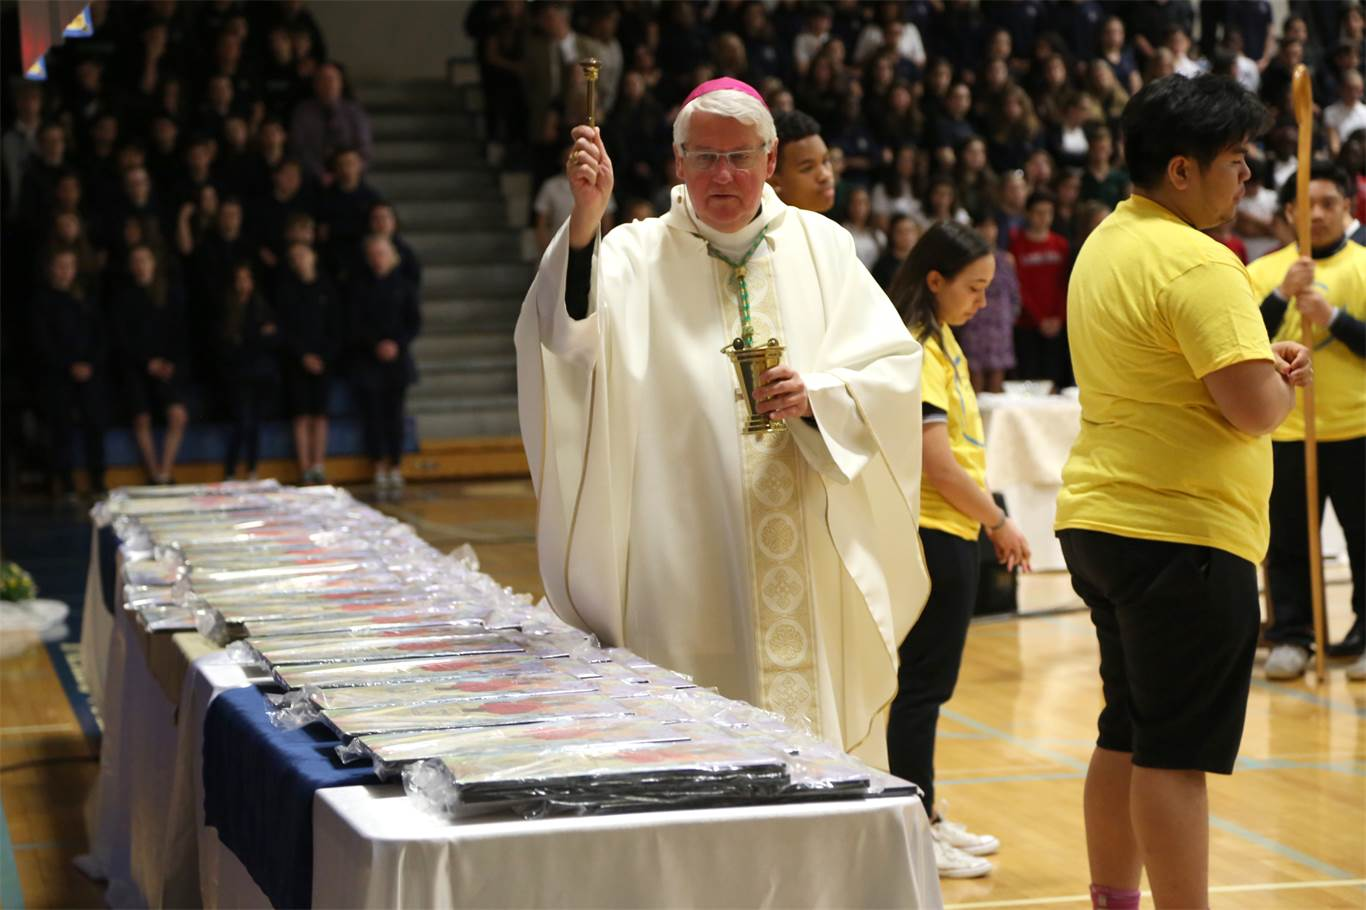 Bishop Crosby blesses the Catholic Education Week plaques prior to their distribution to schools. The plaque was designed by Angela Guglielmo, a Grade 8 student at St. Mark Catholic Elementary School. Photo by Jenna Madalena.